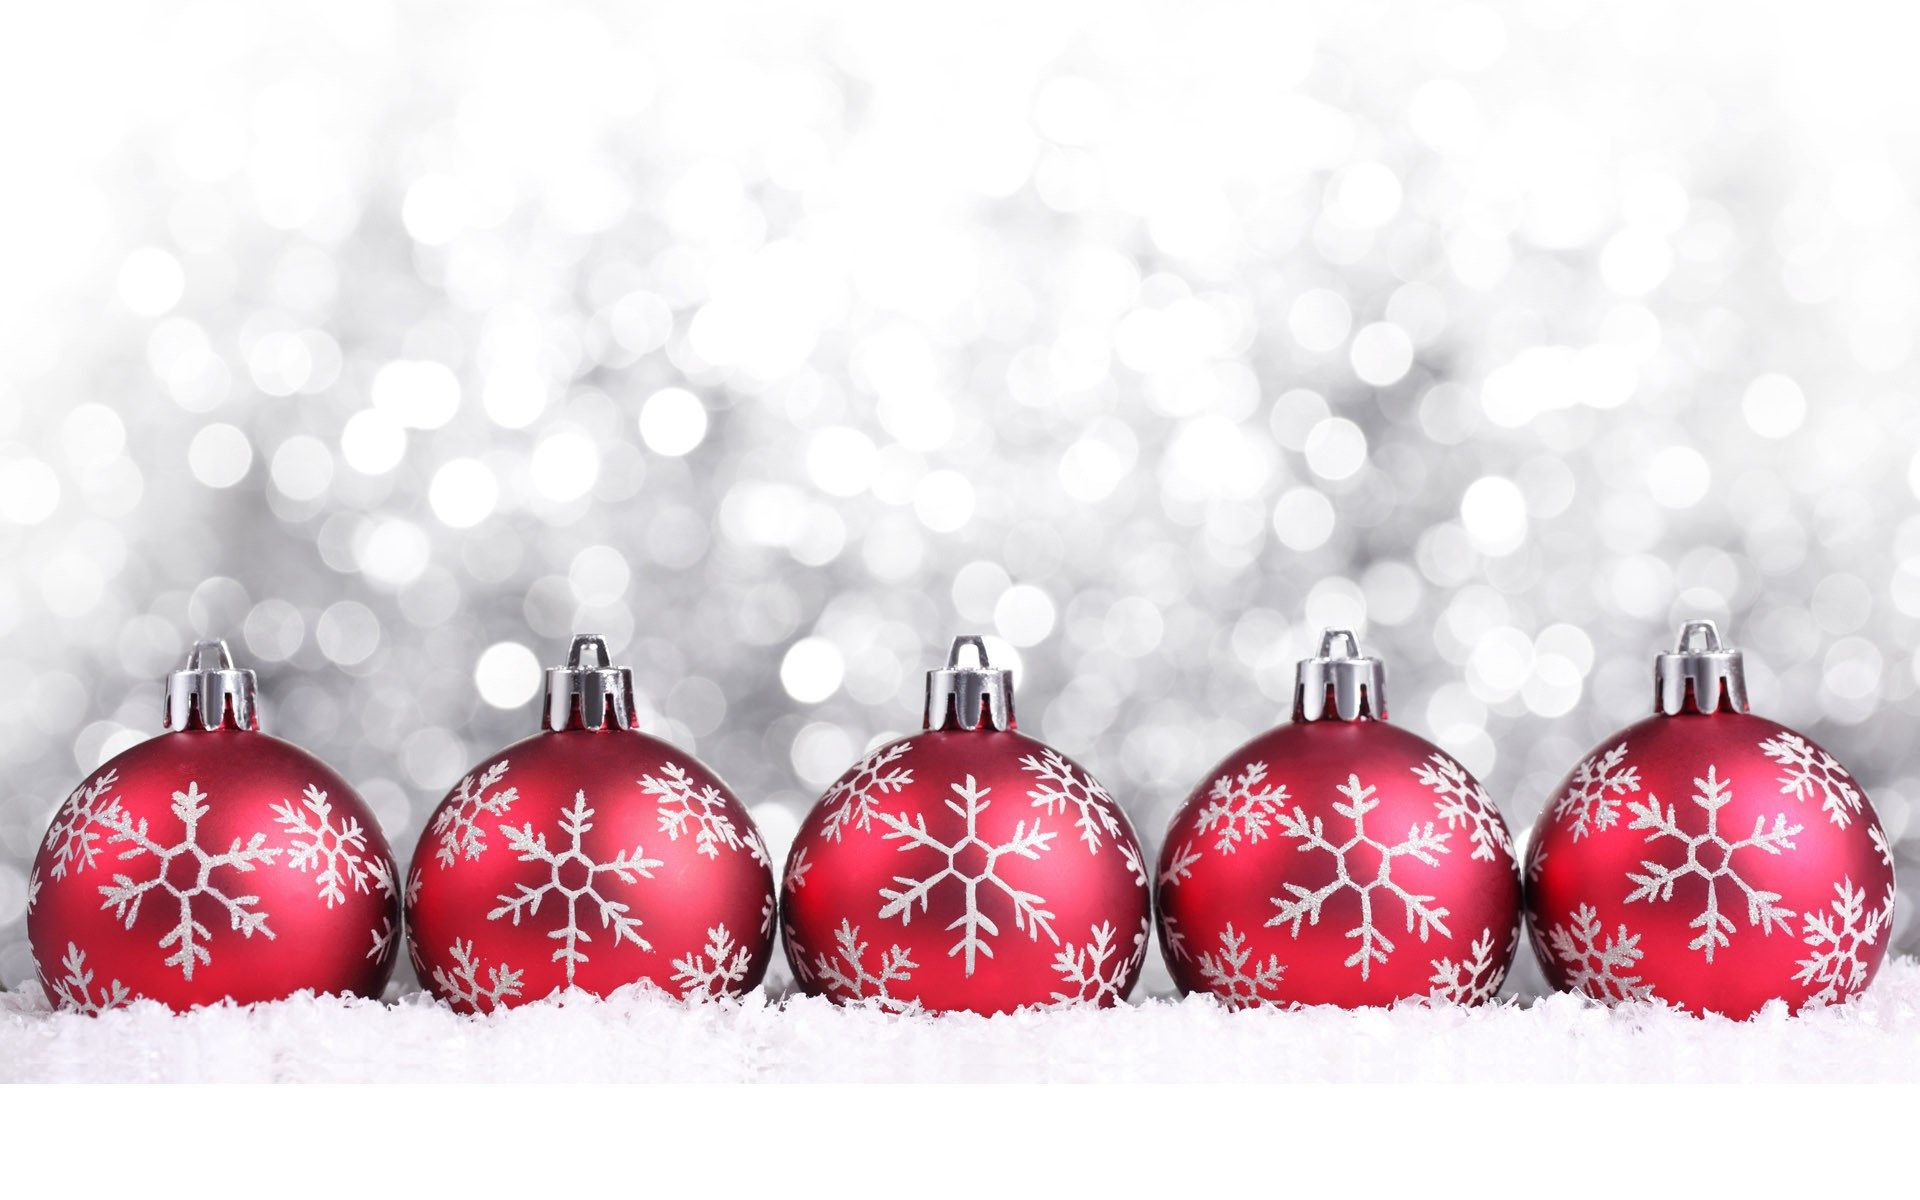 Christmas Images For Desktop Background Christmas Desktop Christmas Background Desktop Holiday Cleaning